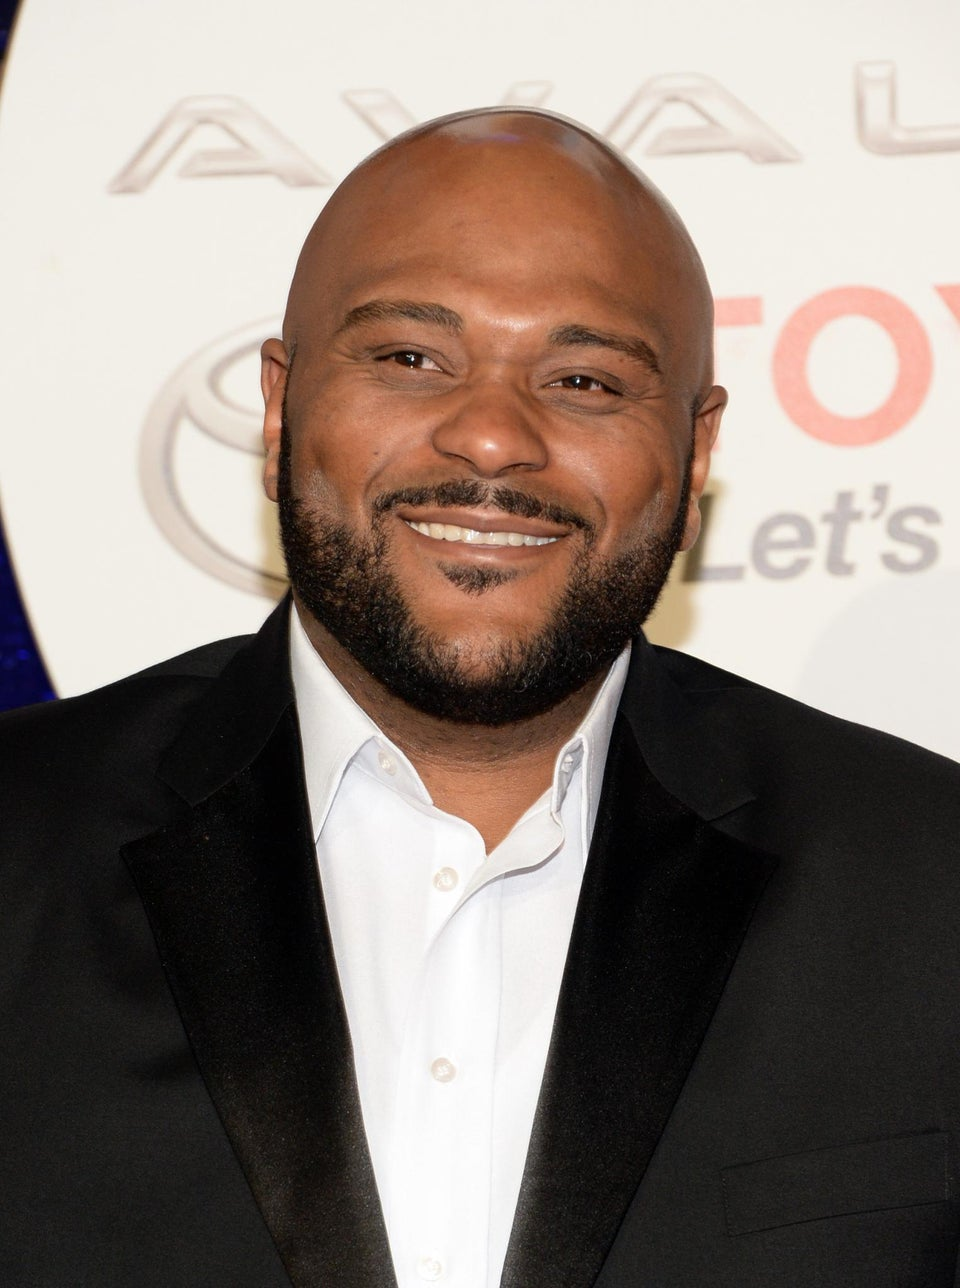 EXCLUSIVE: Ruben Studdard on 'Biggest Loser' Elimination and Weight-Loss Goals